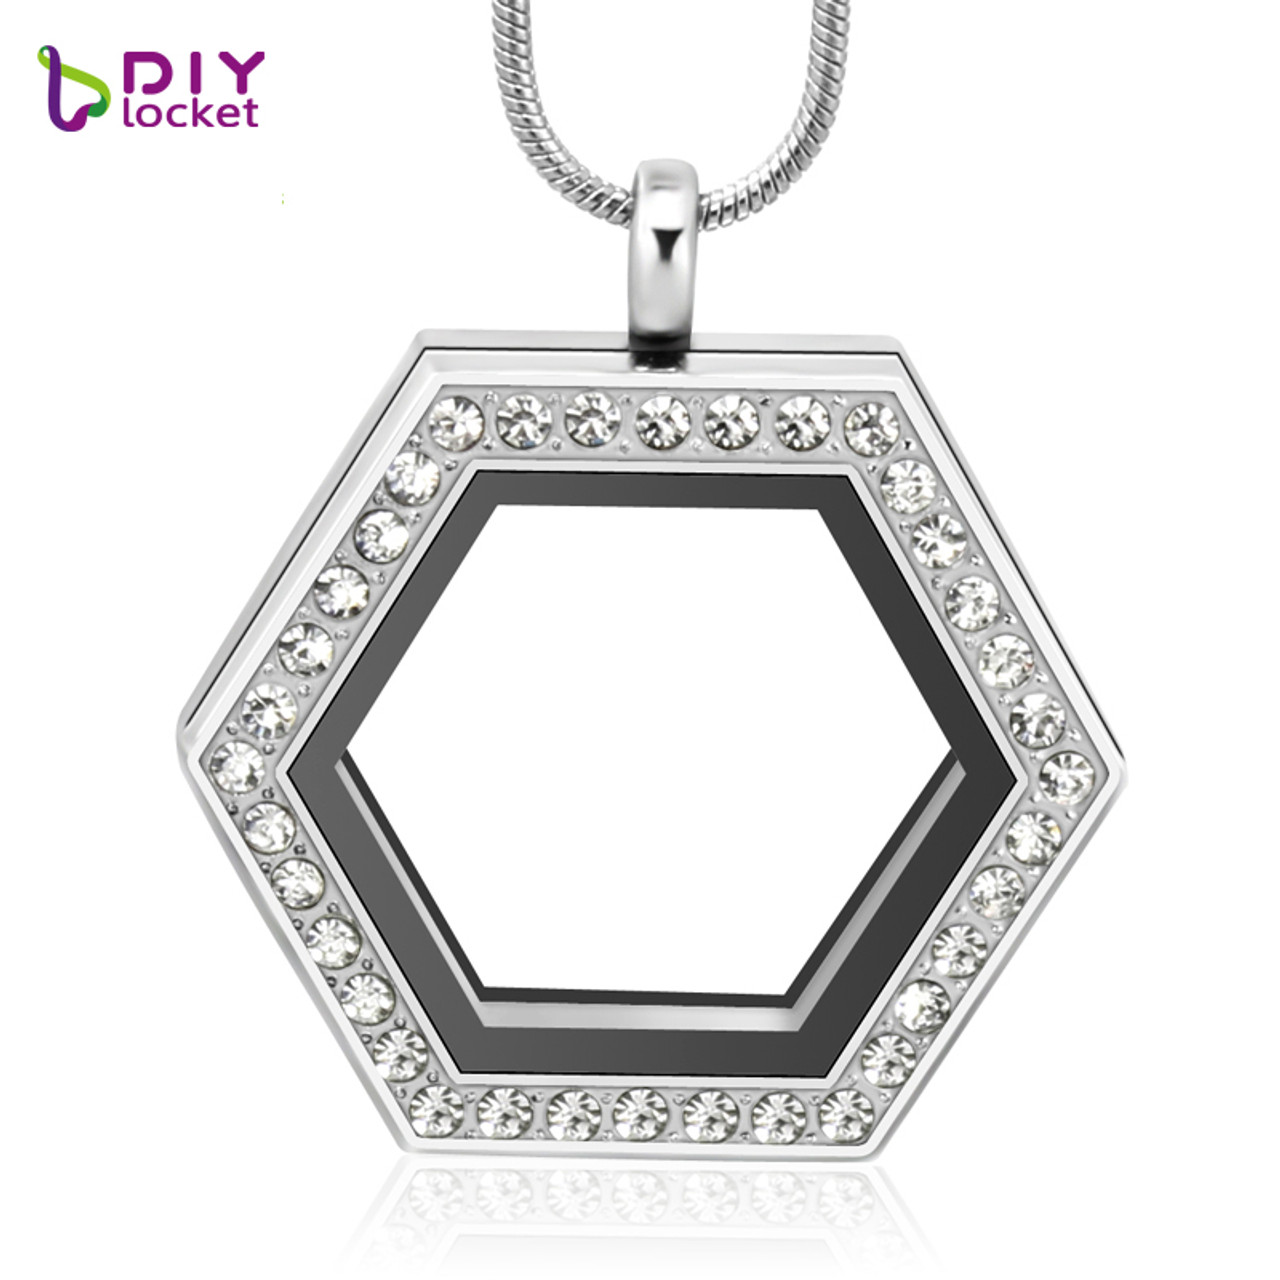 Diylocket jewelry wholesale sexangle locket pendant magnetic silver small charms for lockets glass memory locket pendant aloadofball Choice Image